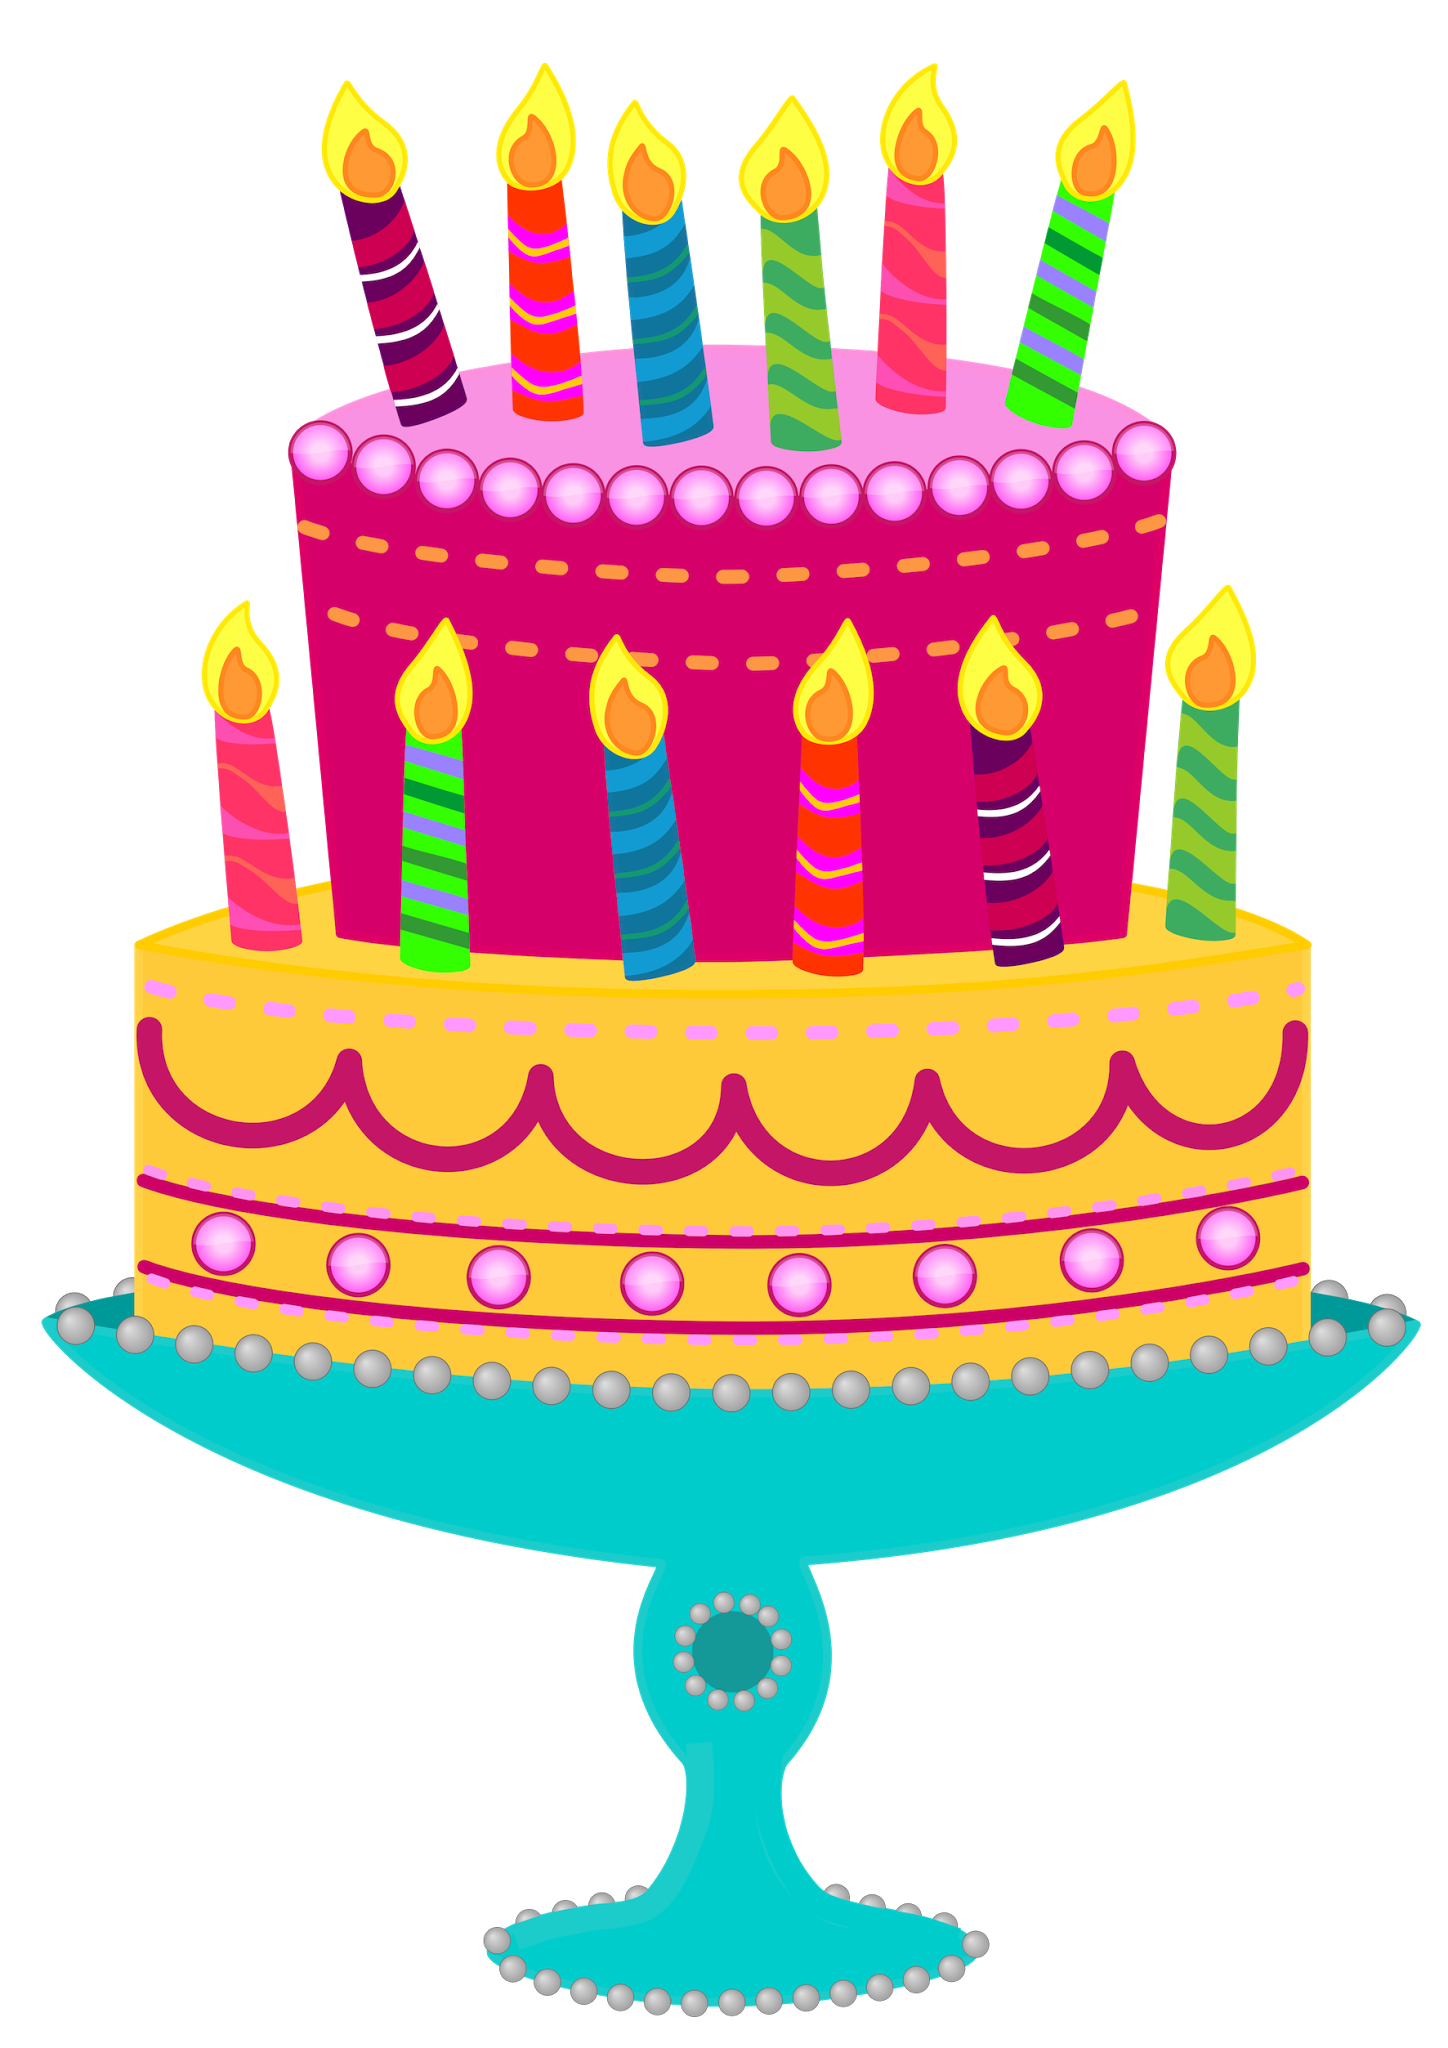 Free Birthday Cake Clipart - Clipart Kid